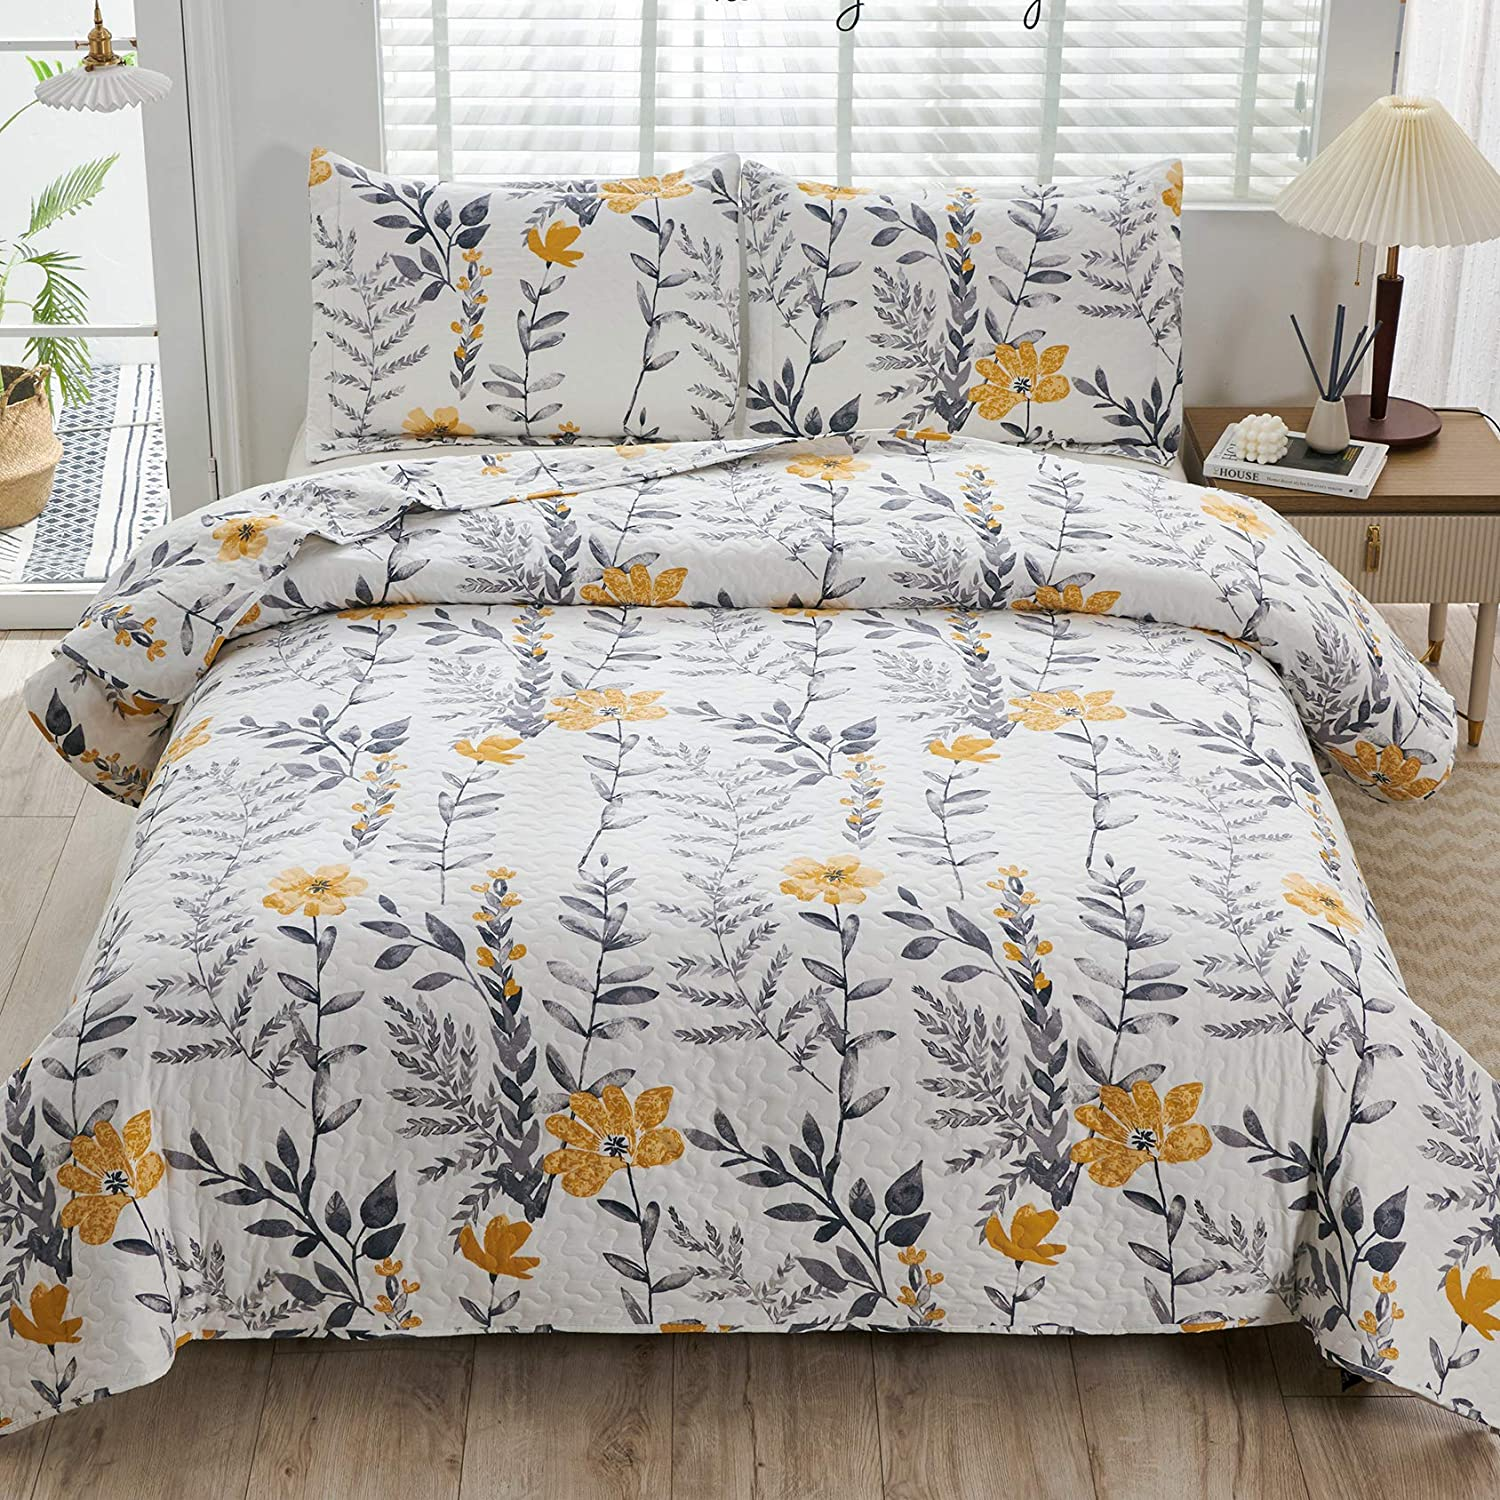 3 Pcs King Size Floral Bedspread Quilts Popularity Plant Flower Bargain Lightweight